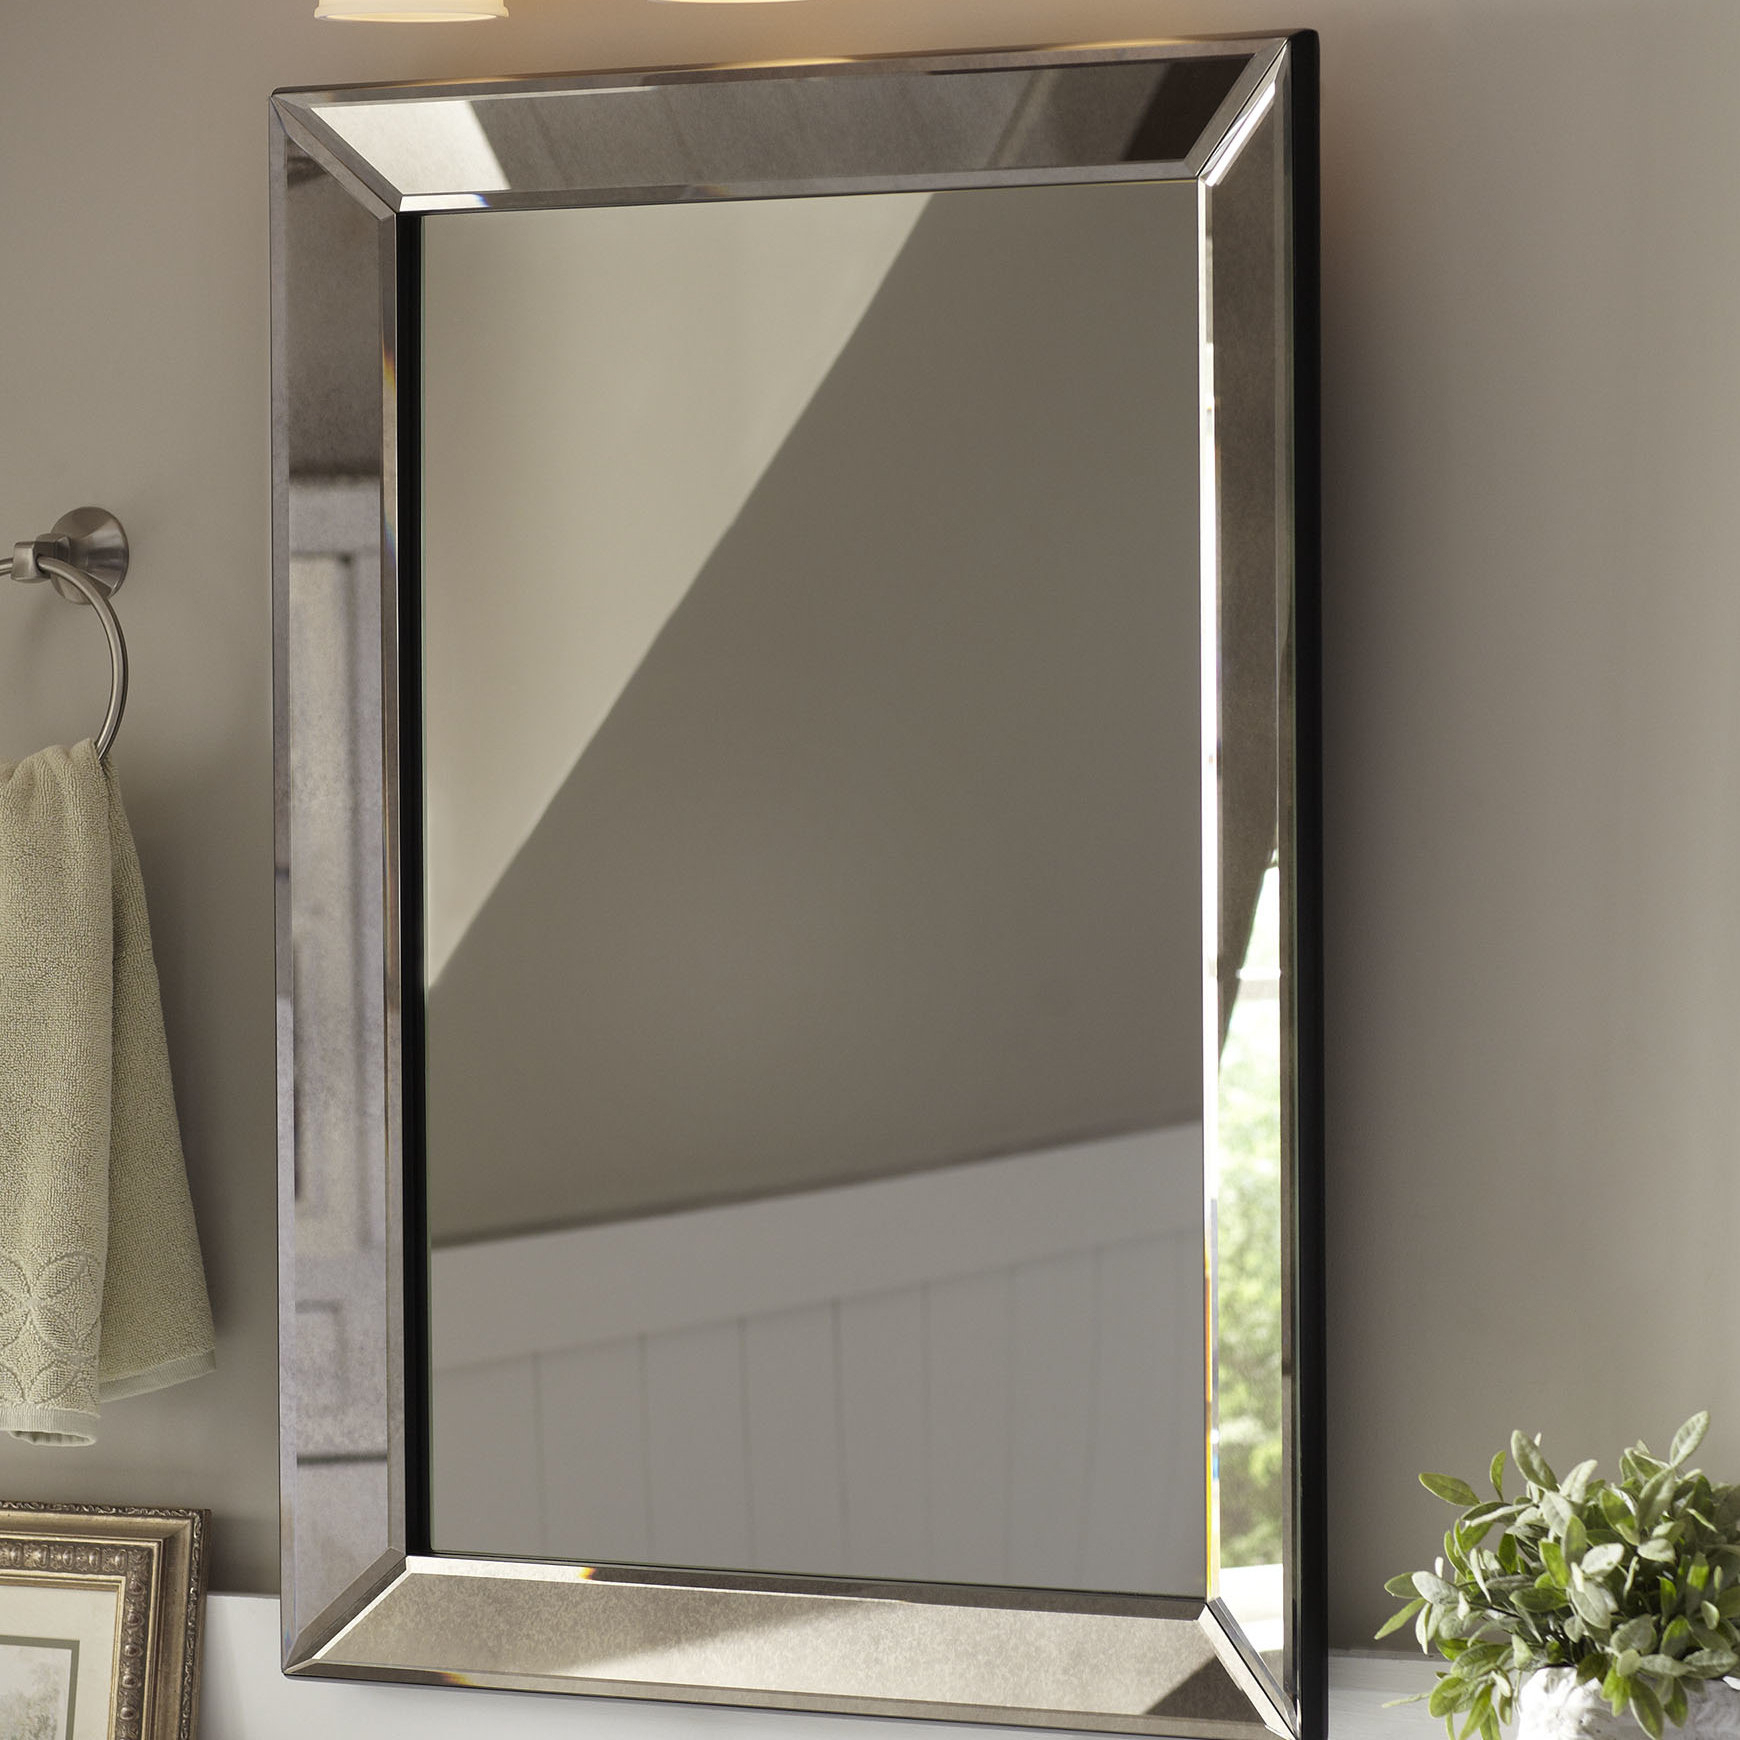 Farmhouse Mirrors | Birch Lane For Traditional/coastal Accent Mirrors (View 14 of 20)